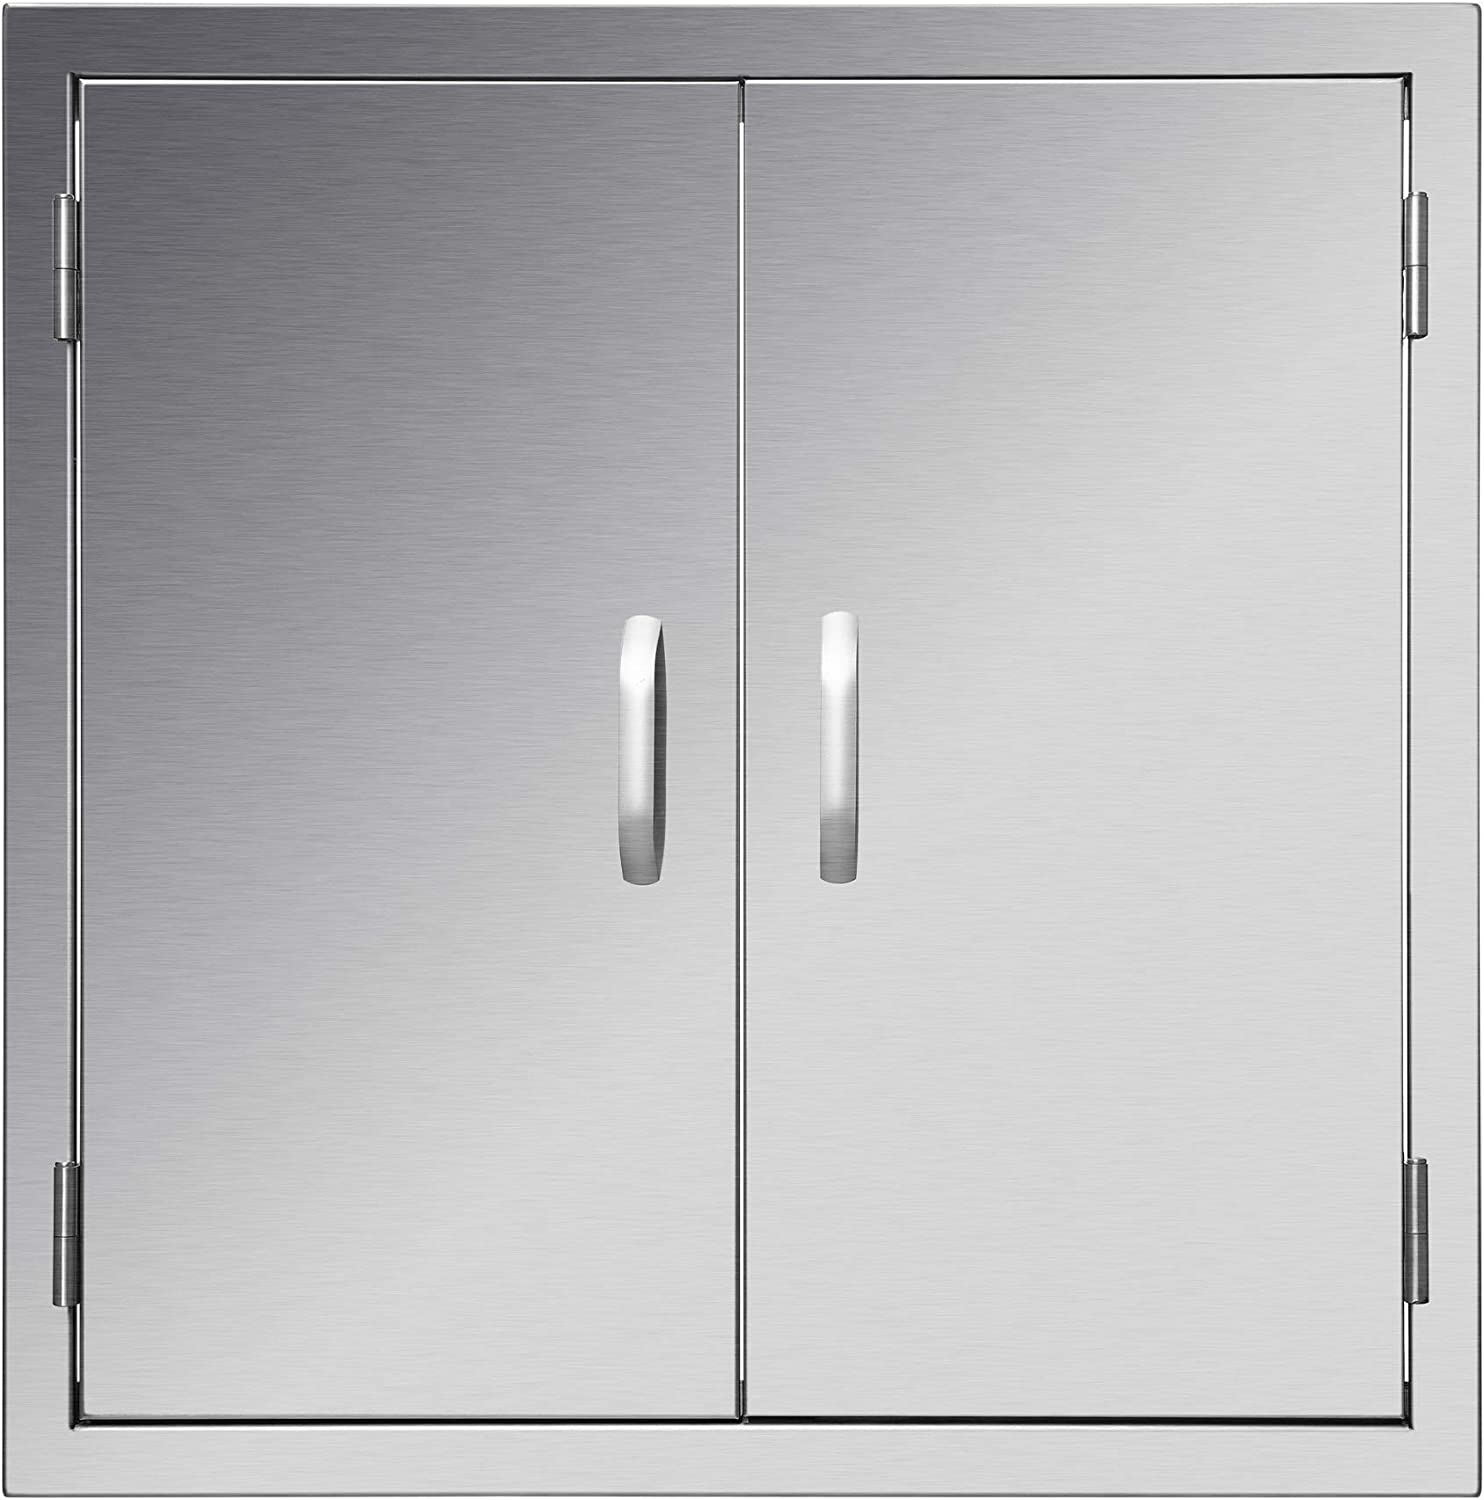 """CO-Z Upgraded Outdoor Kitchen Doors, 304 Stainless Steel Double BBQ Access Doors for Outdoor Kitchen, Commercial BBQ Island, Grilling Station, Outside Cabinet, Barbeque Grill, Built-in (24""""W x 24""""H)"""